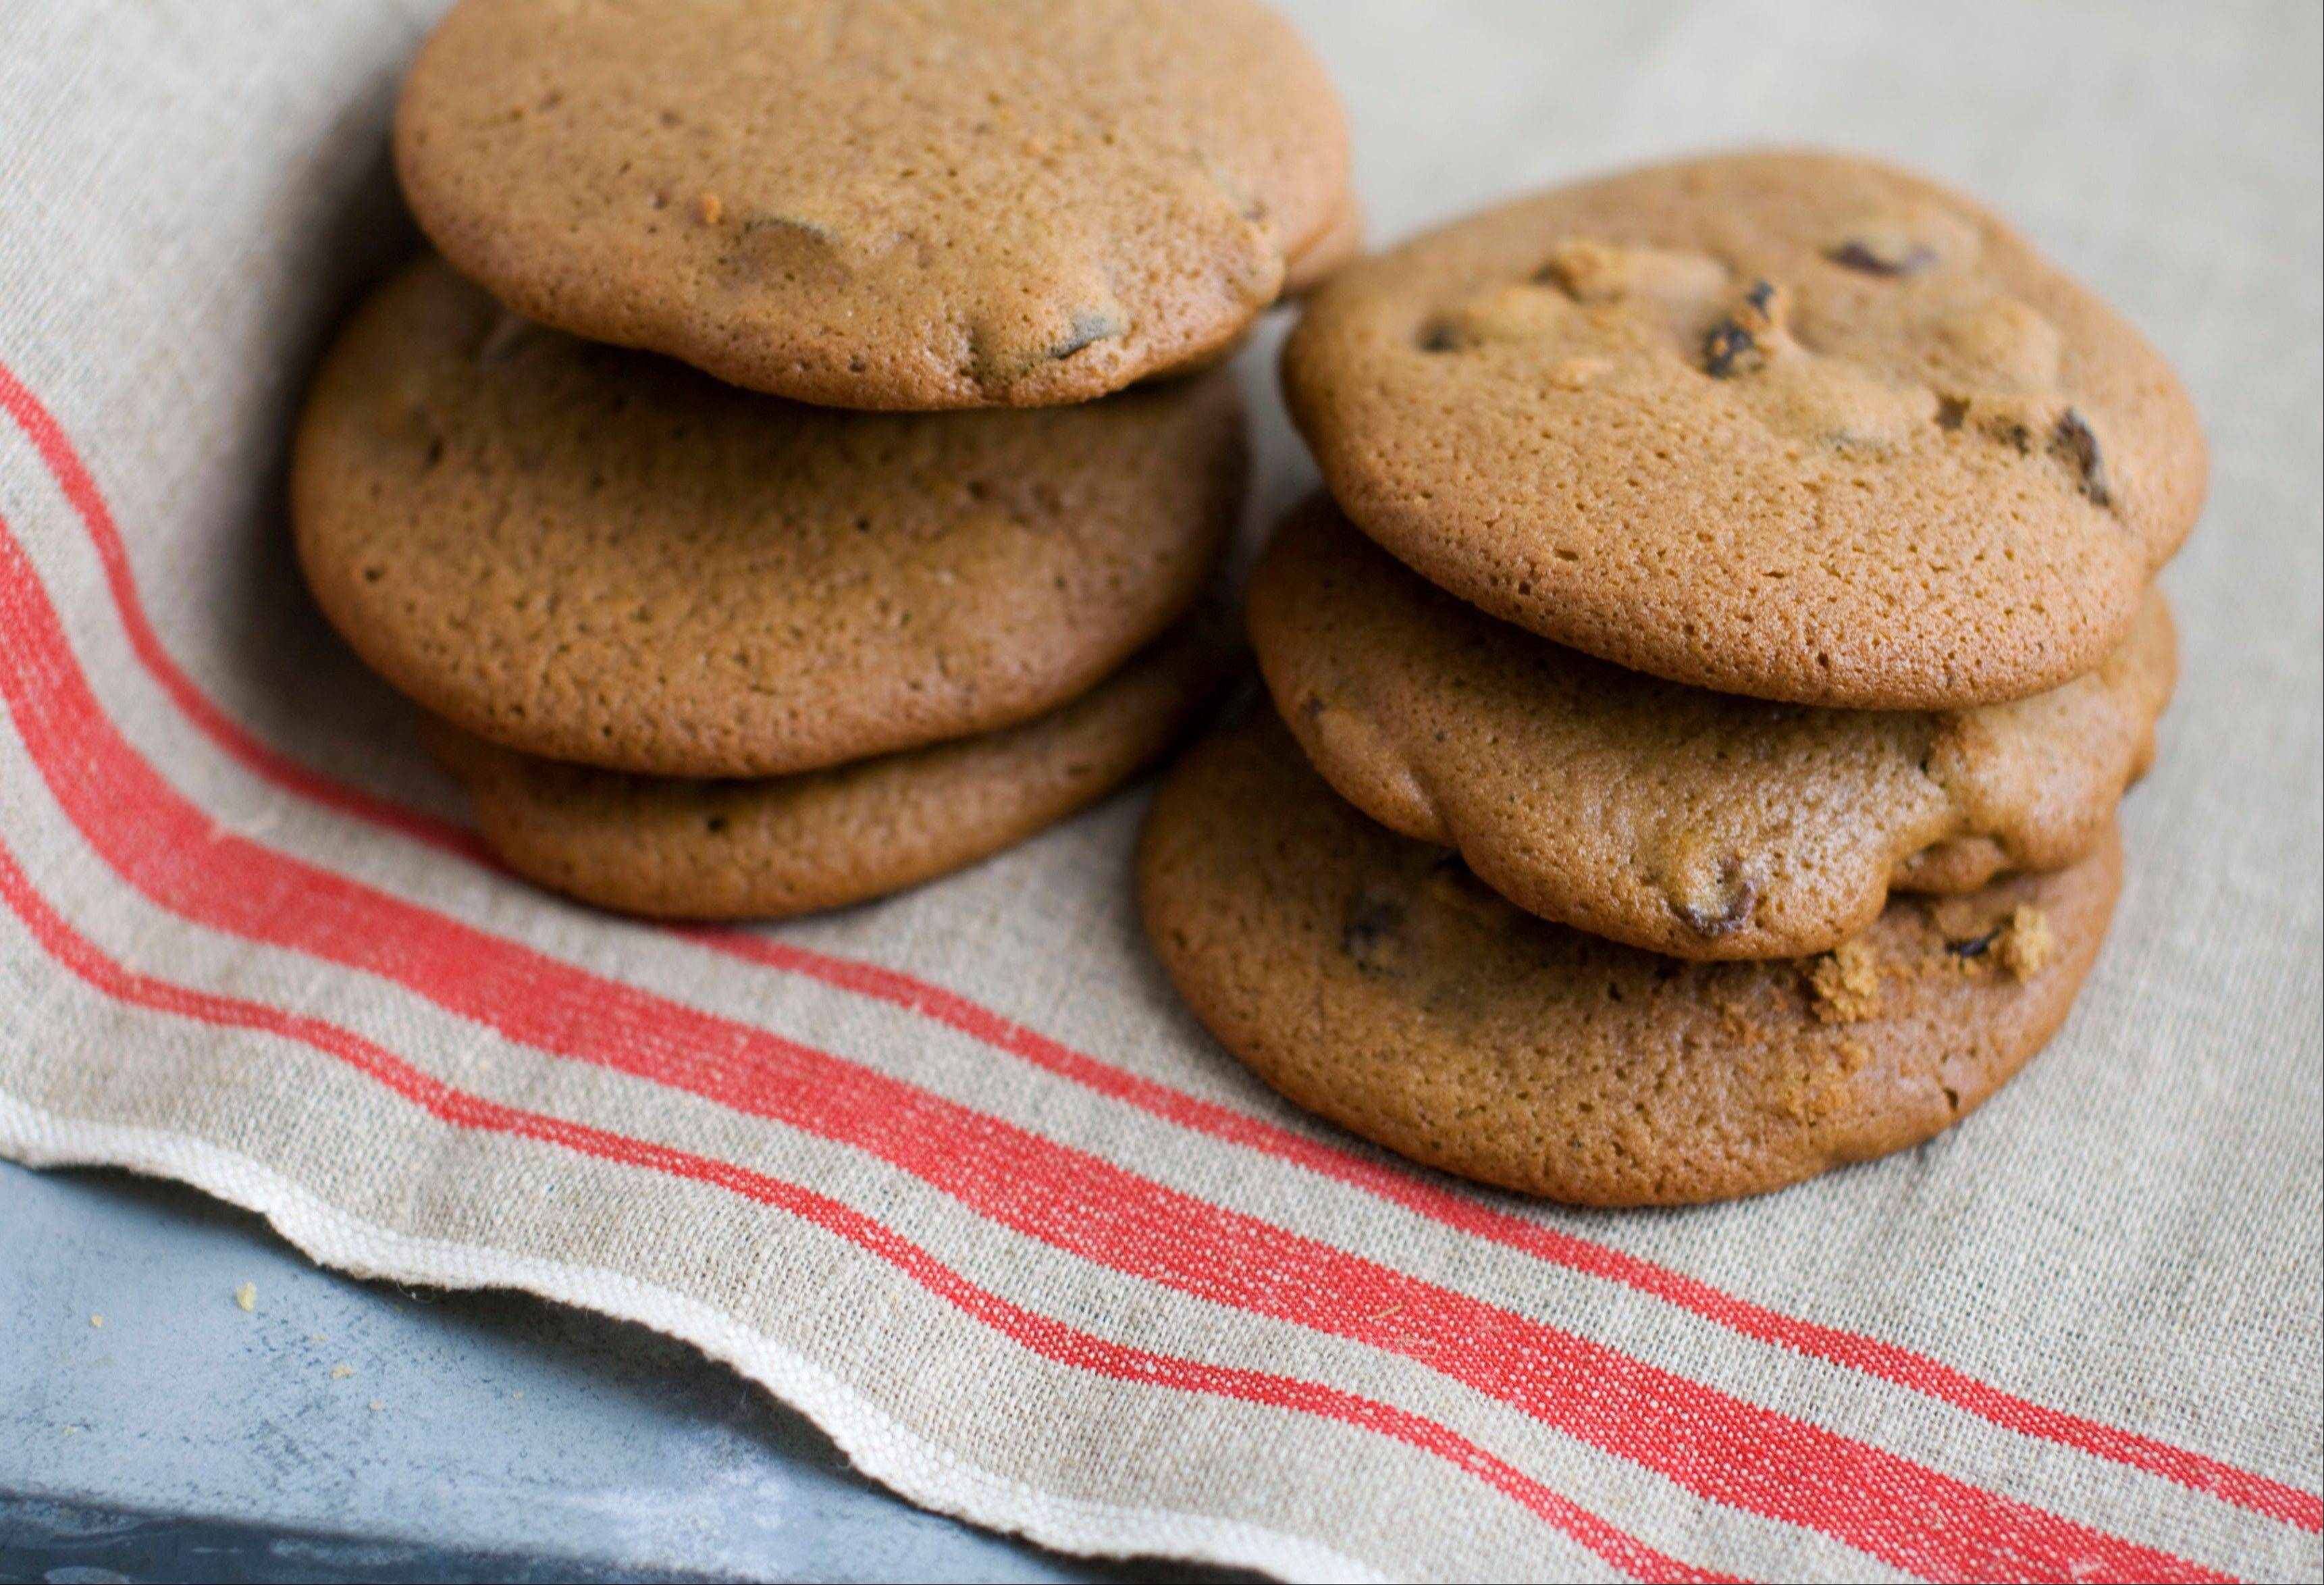 Dried cherries stand in for raisins in these drop cookies lovingly referred to as hermits.